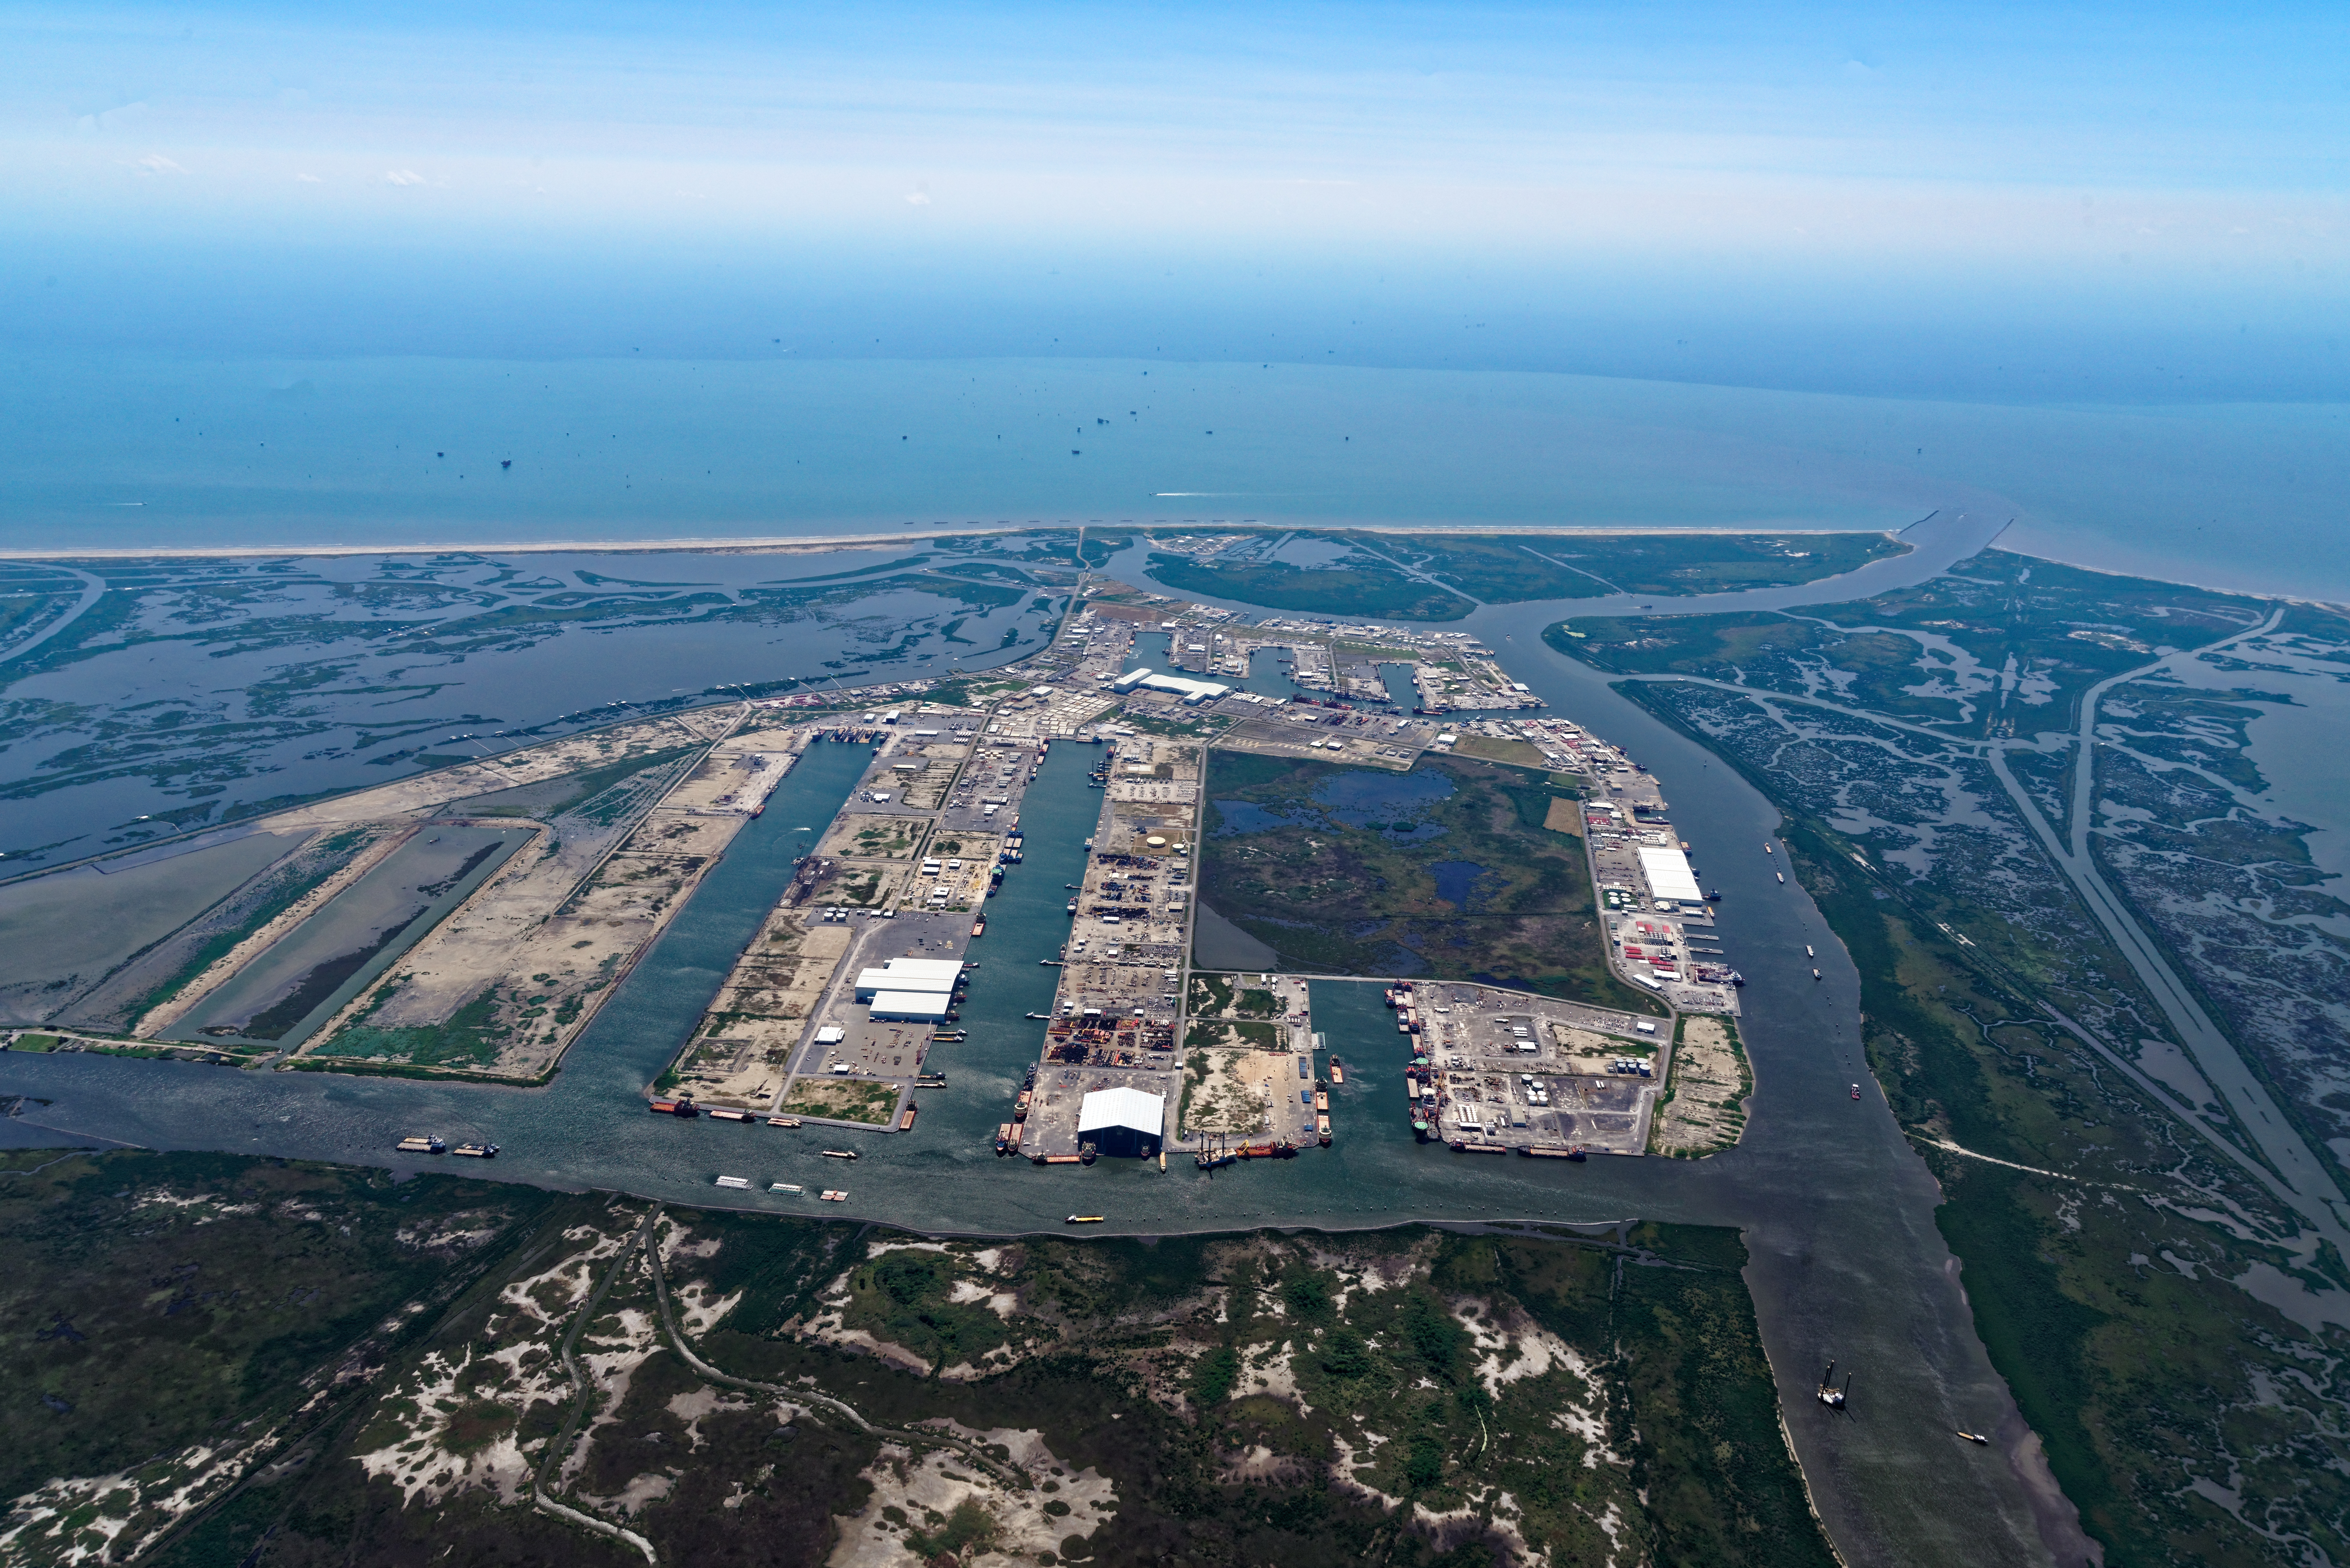 The Water Institute of the Gulf is working at Port Fourchon